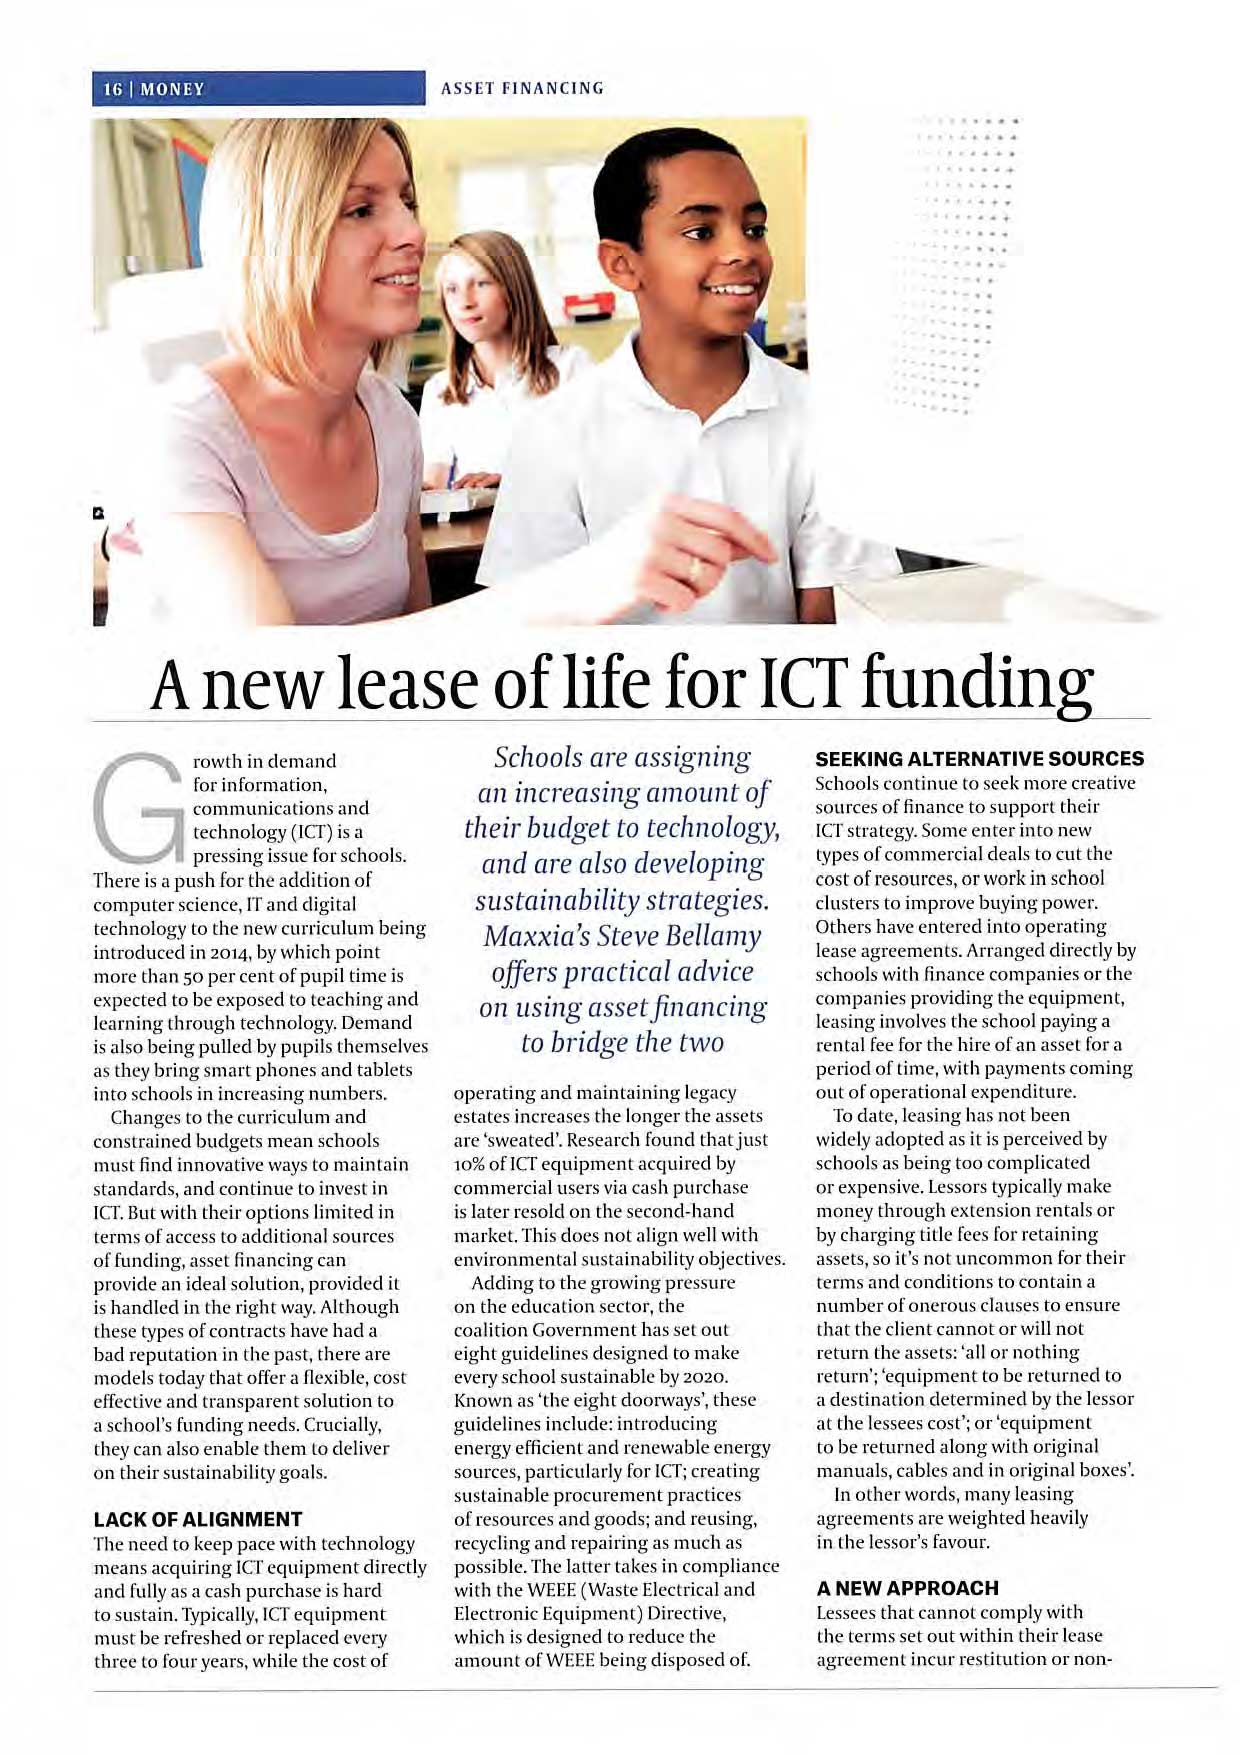 A new lease of life for ICT funding